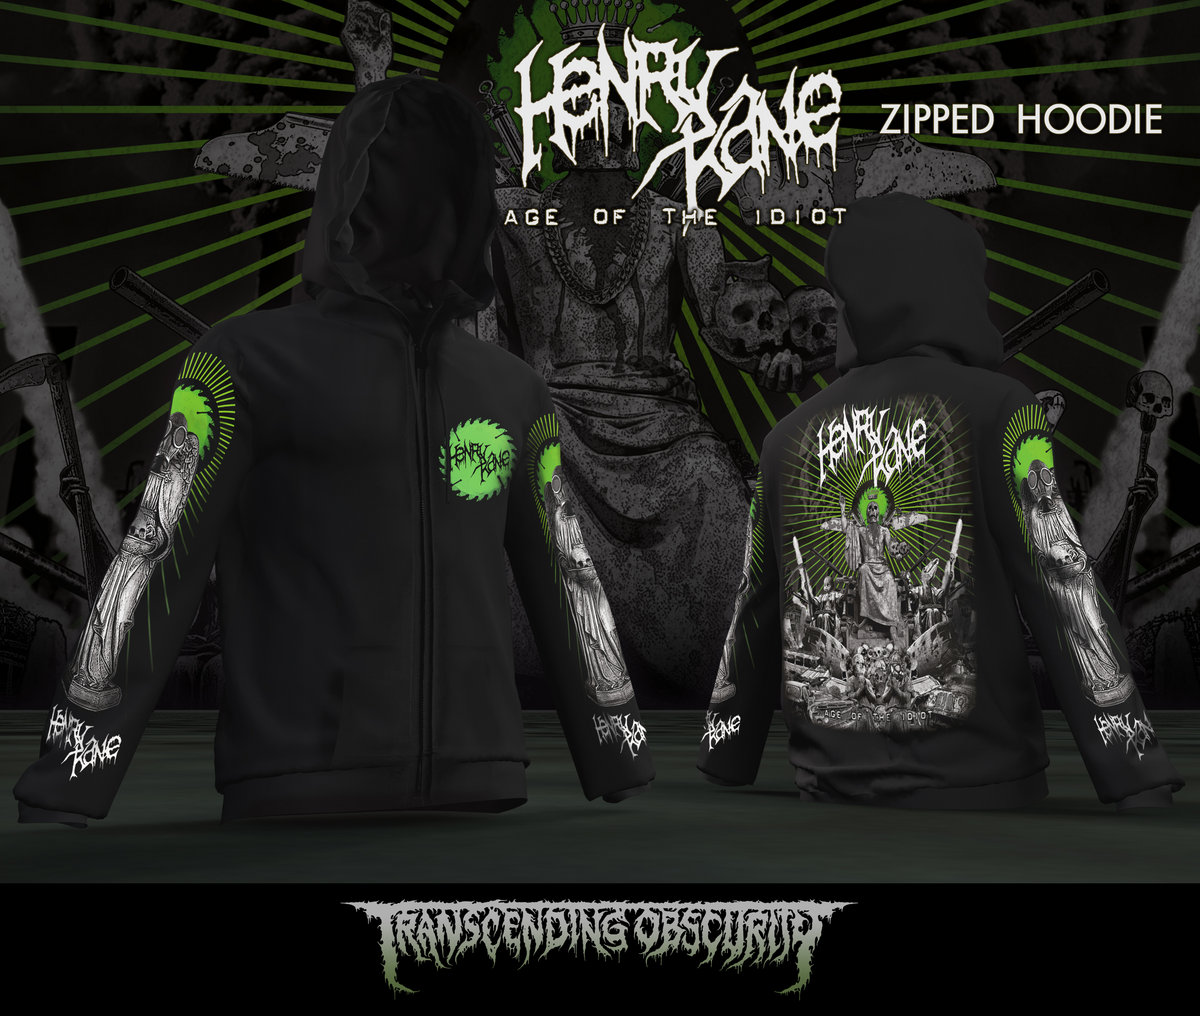 HENRY KANE Metal Zipped Hoodie (Limited to 15)